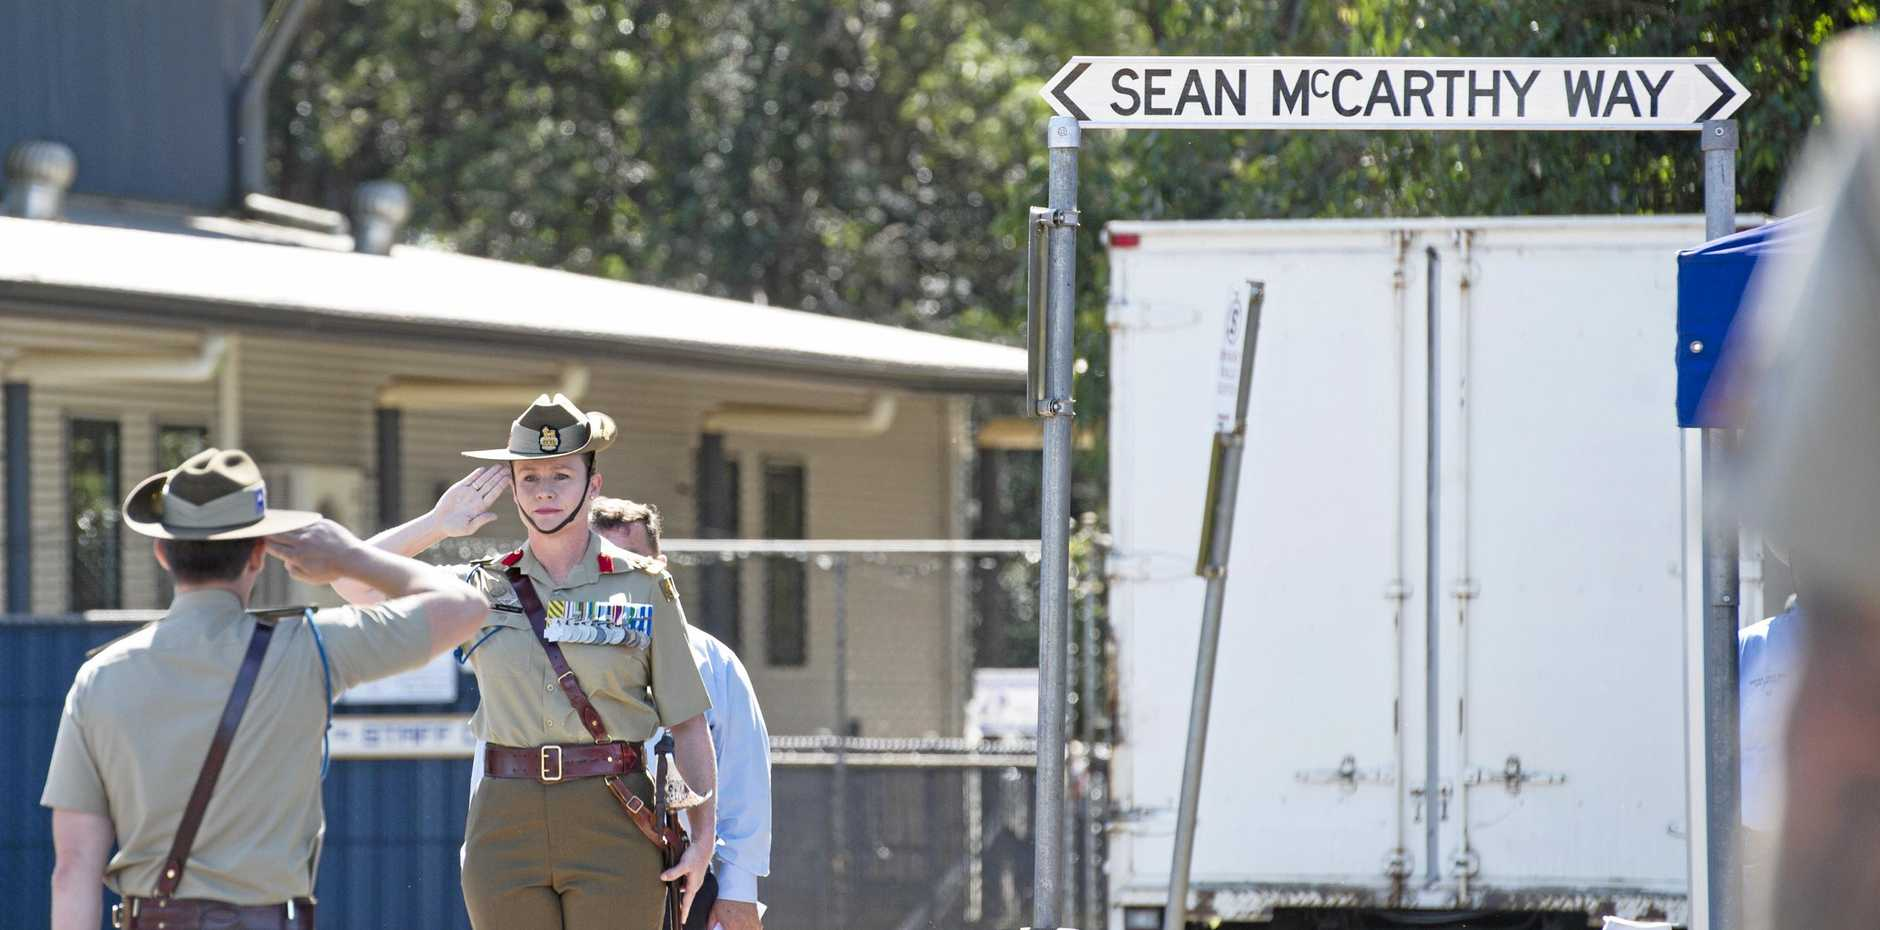 Royal Australian Corps of Signals, Head of Corps Brigadier Susan Coyle arrives at the renaming ceremony and dedication of Sean McCarthy Way at Highfields in honour of Signaller Sean McCarthy killed in active duty in Afghanistan, Saturday, March 17, 2018.